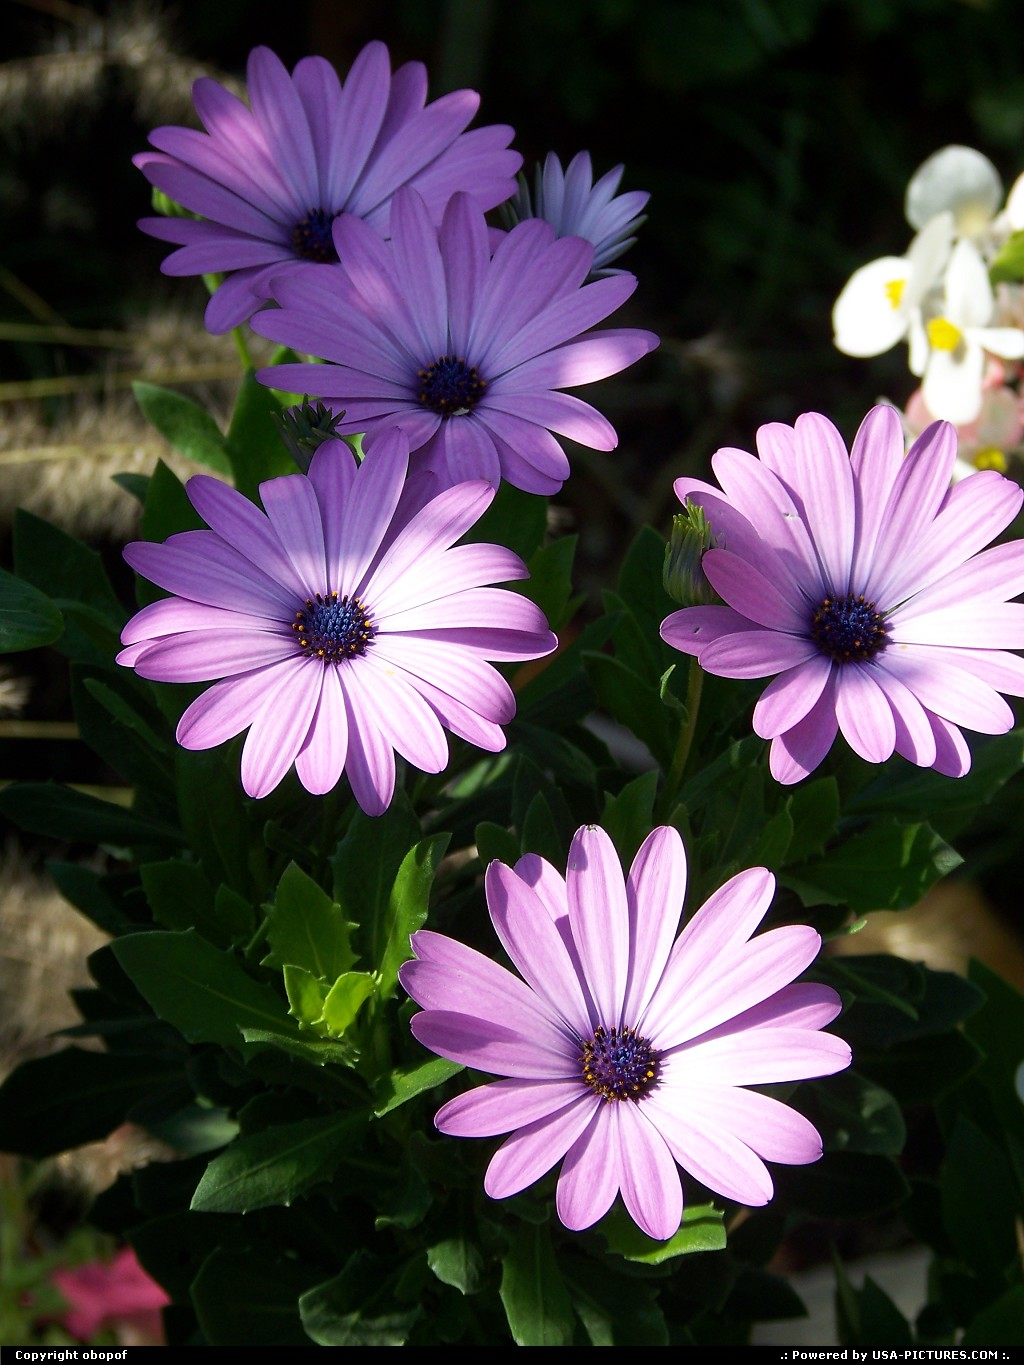 Picture by obopof: Des Moines Iowa   Flower, purple